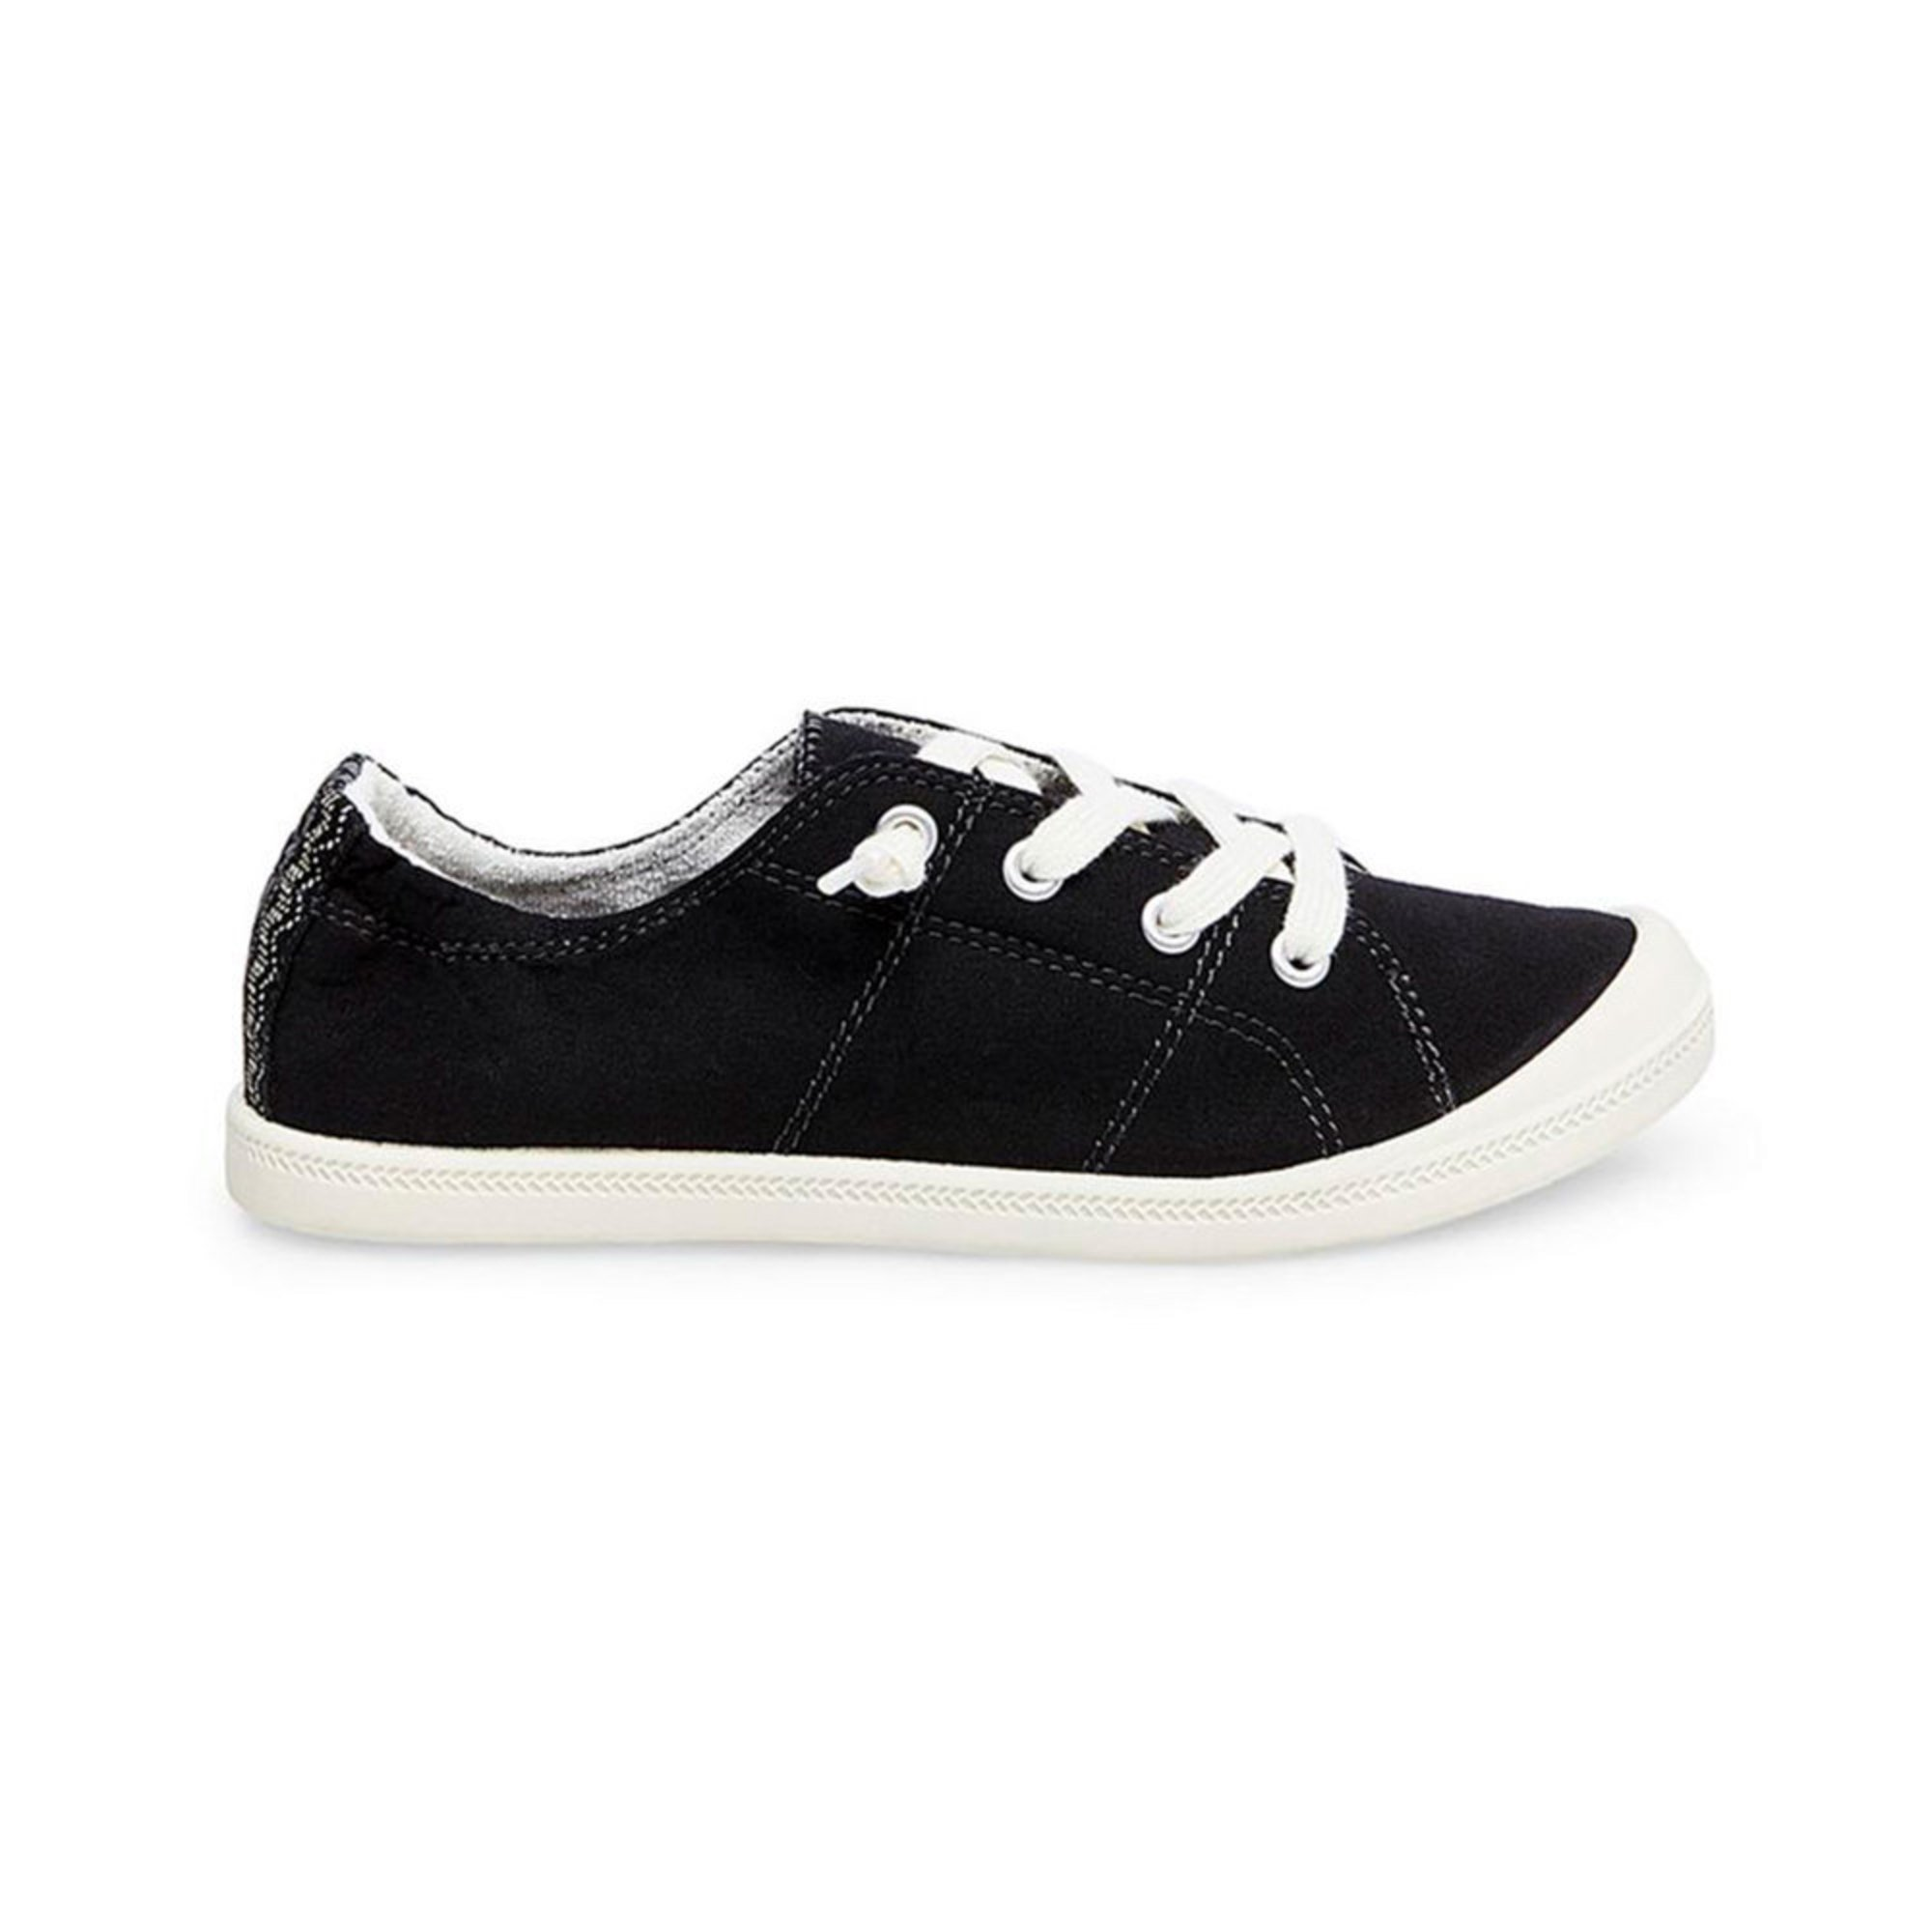 Women Madden Girl BAAILEY White Lace Up Athletic Sneaker Shoes